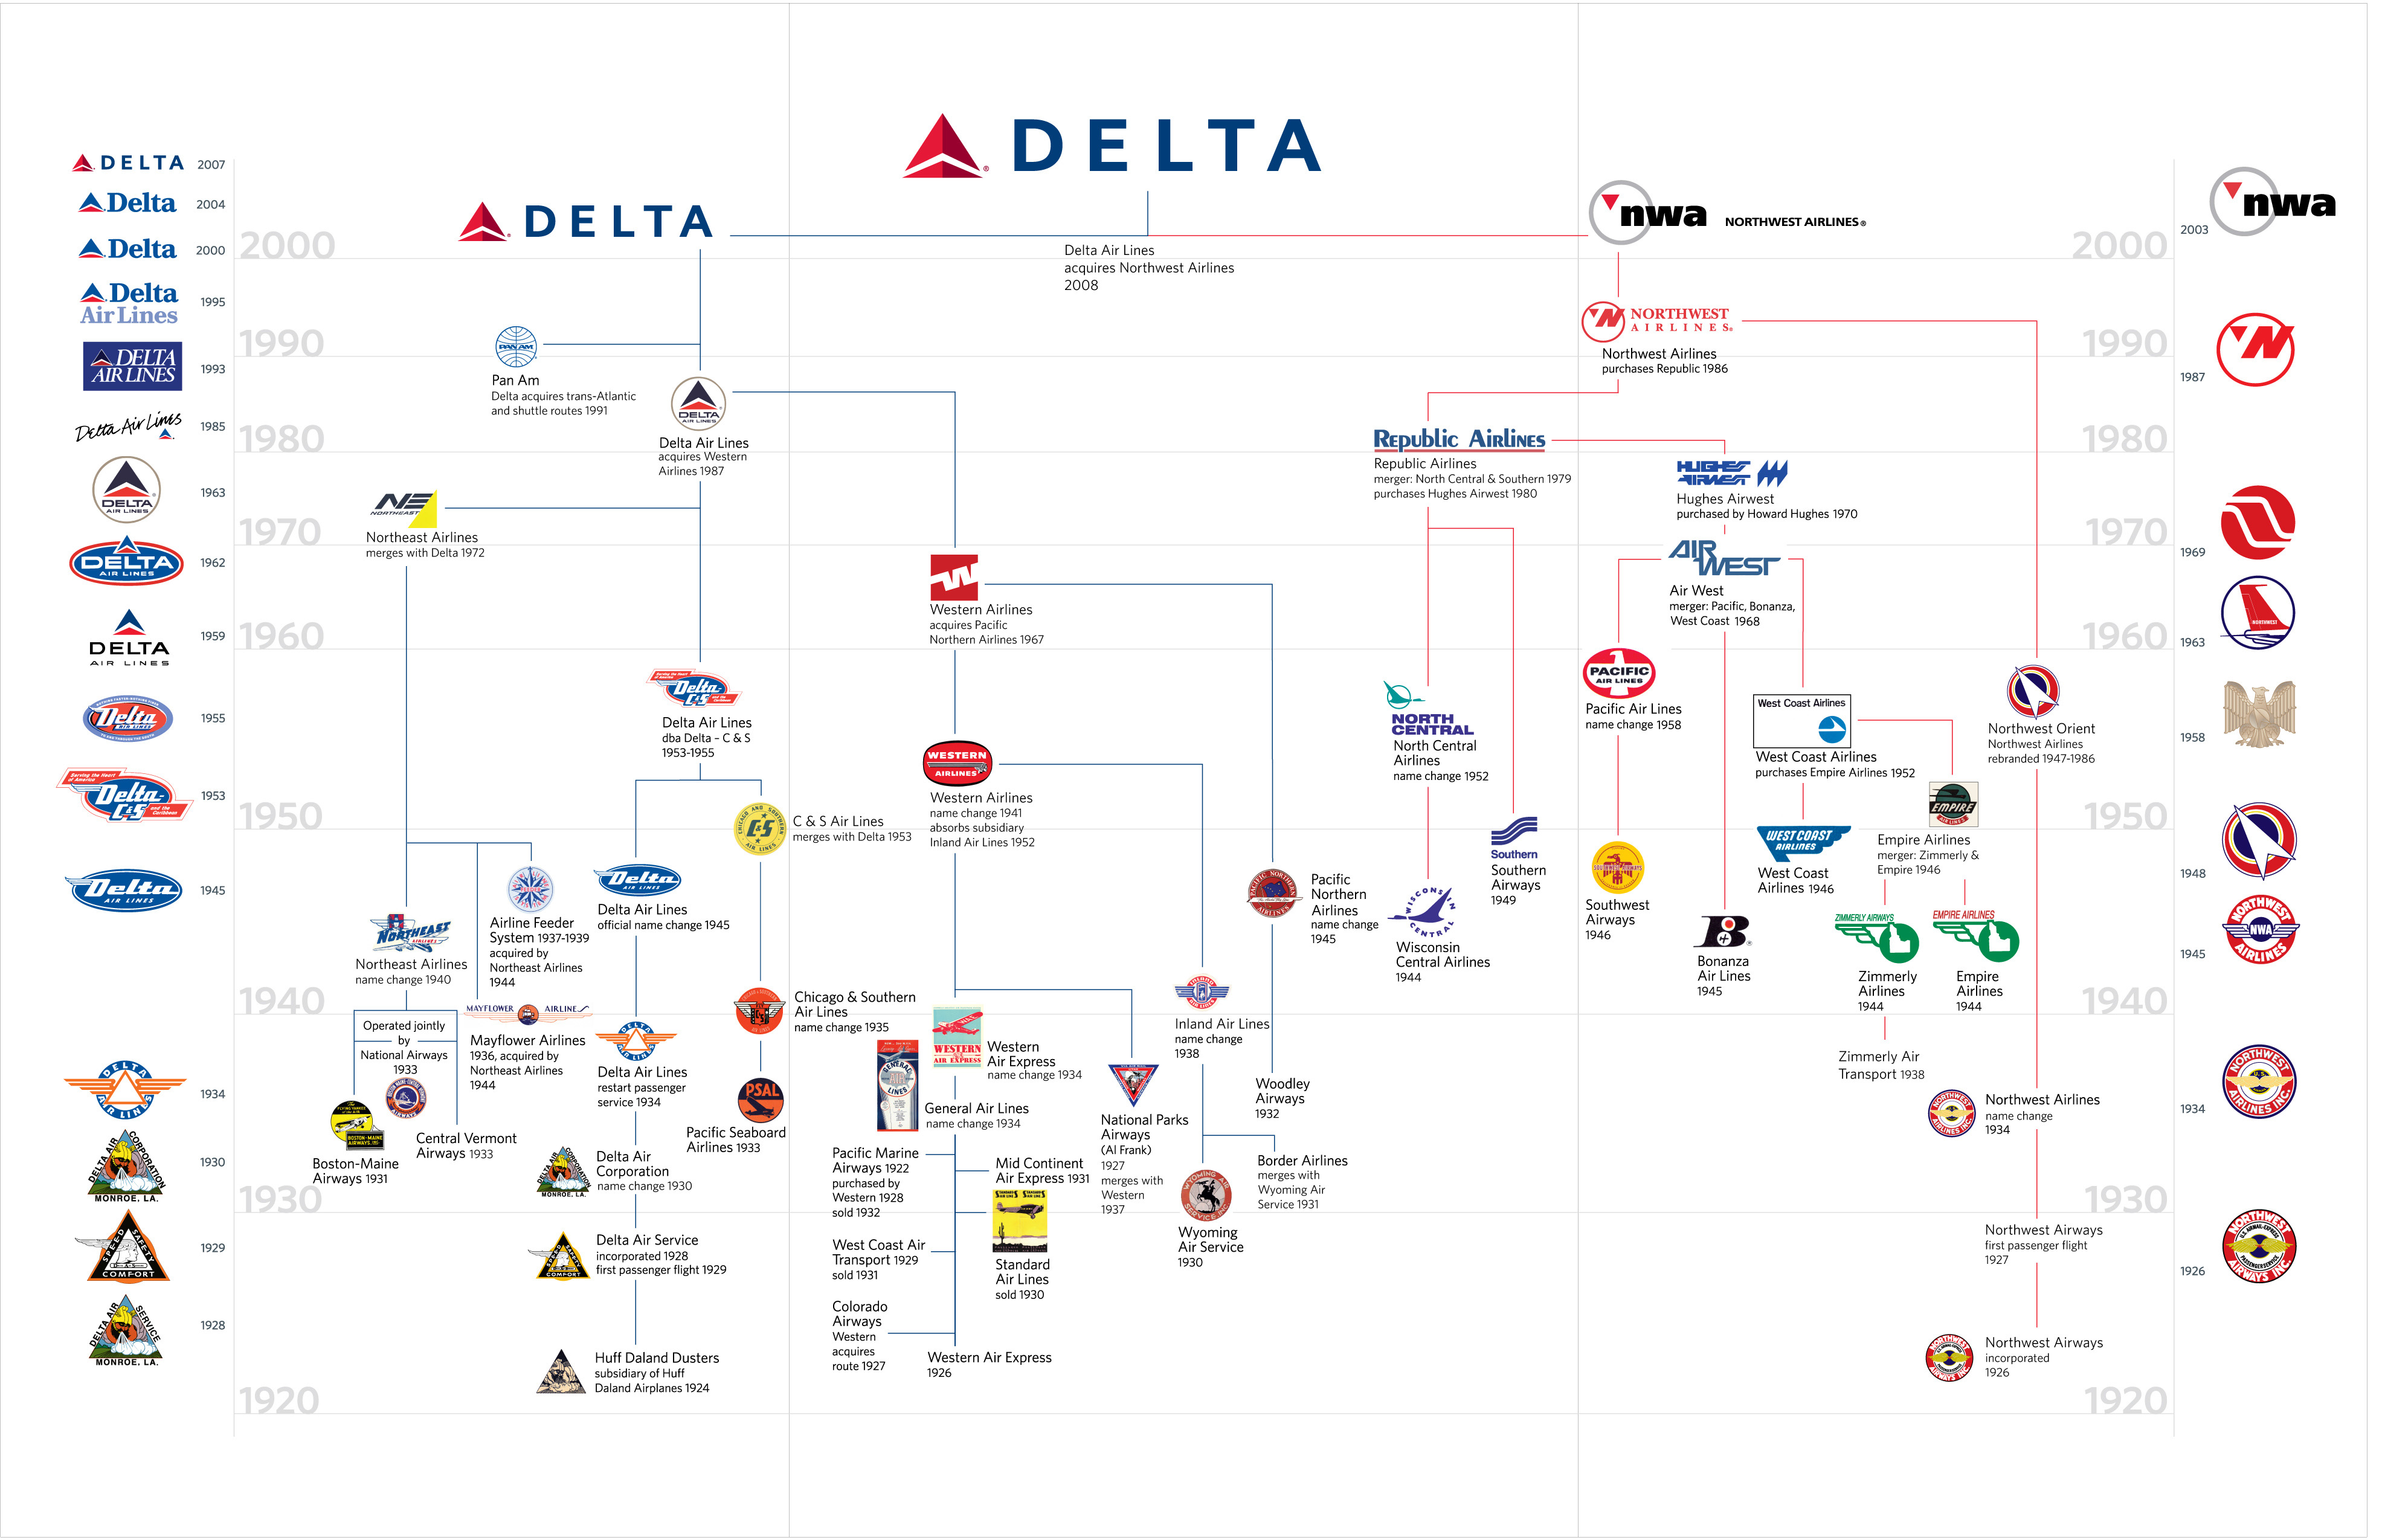 merger s 10th anniversary remarkable how far we have come delta